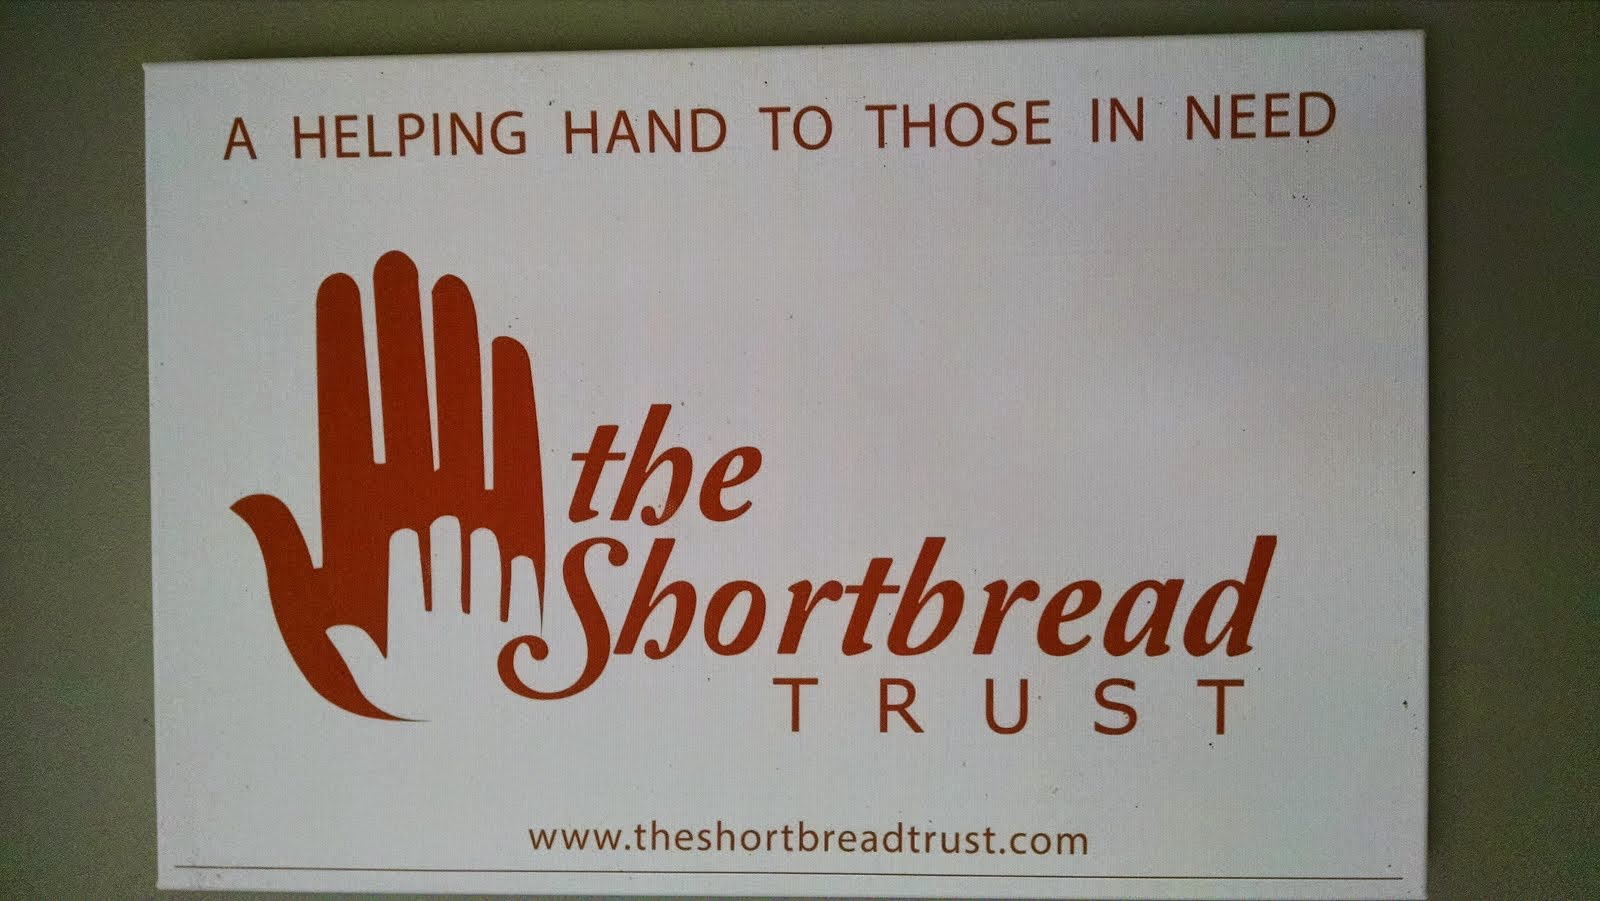 The Shortbread Trust